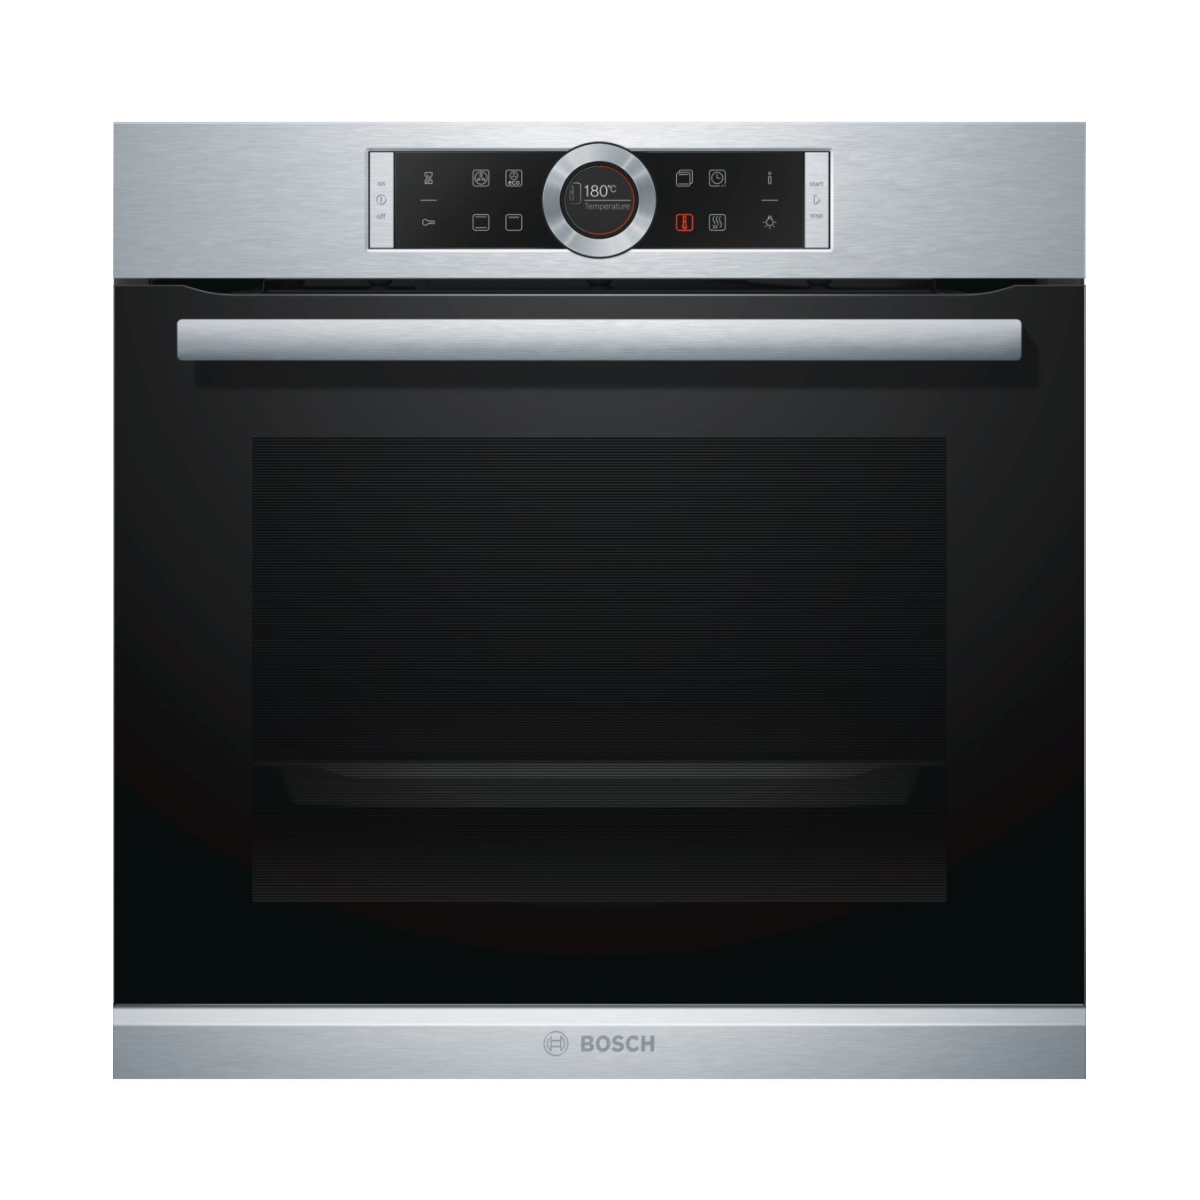 Bosch HBG633BS1A 60cm Serie 8 Electric Built-In Oven 48960